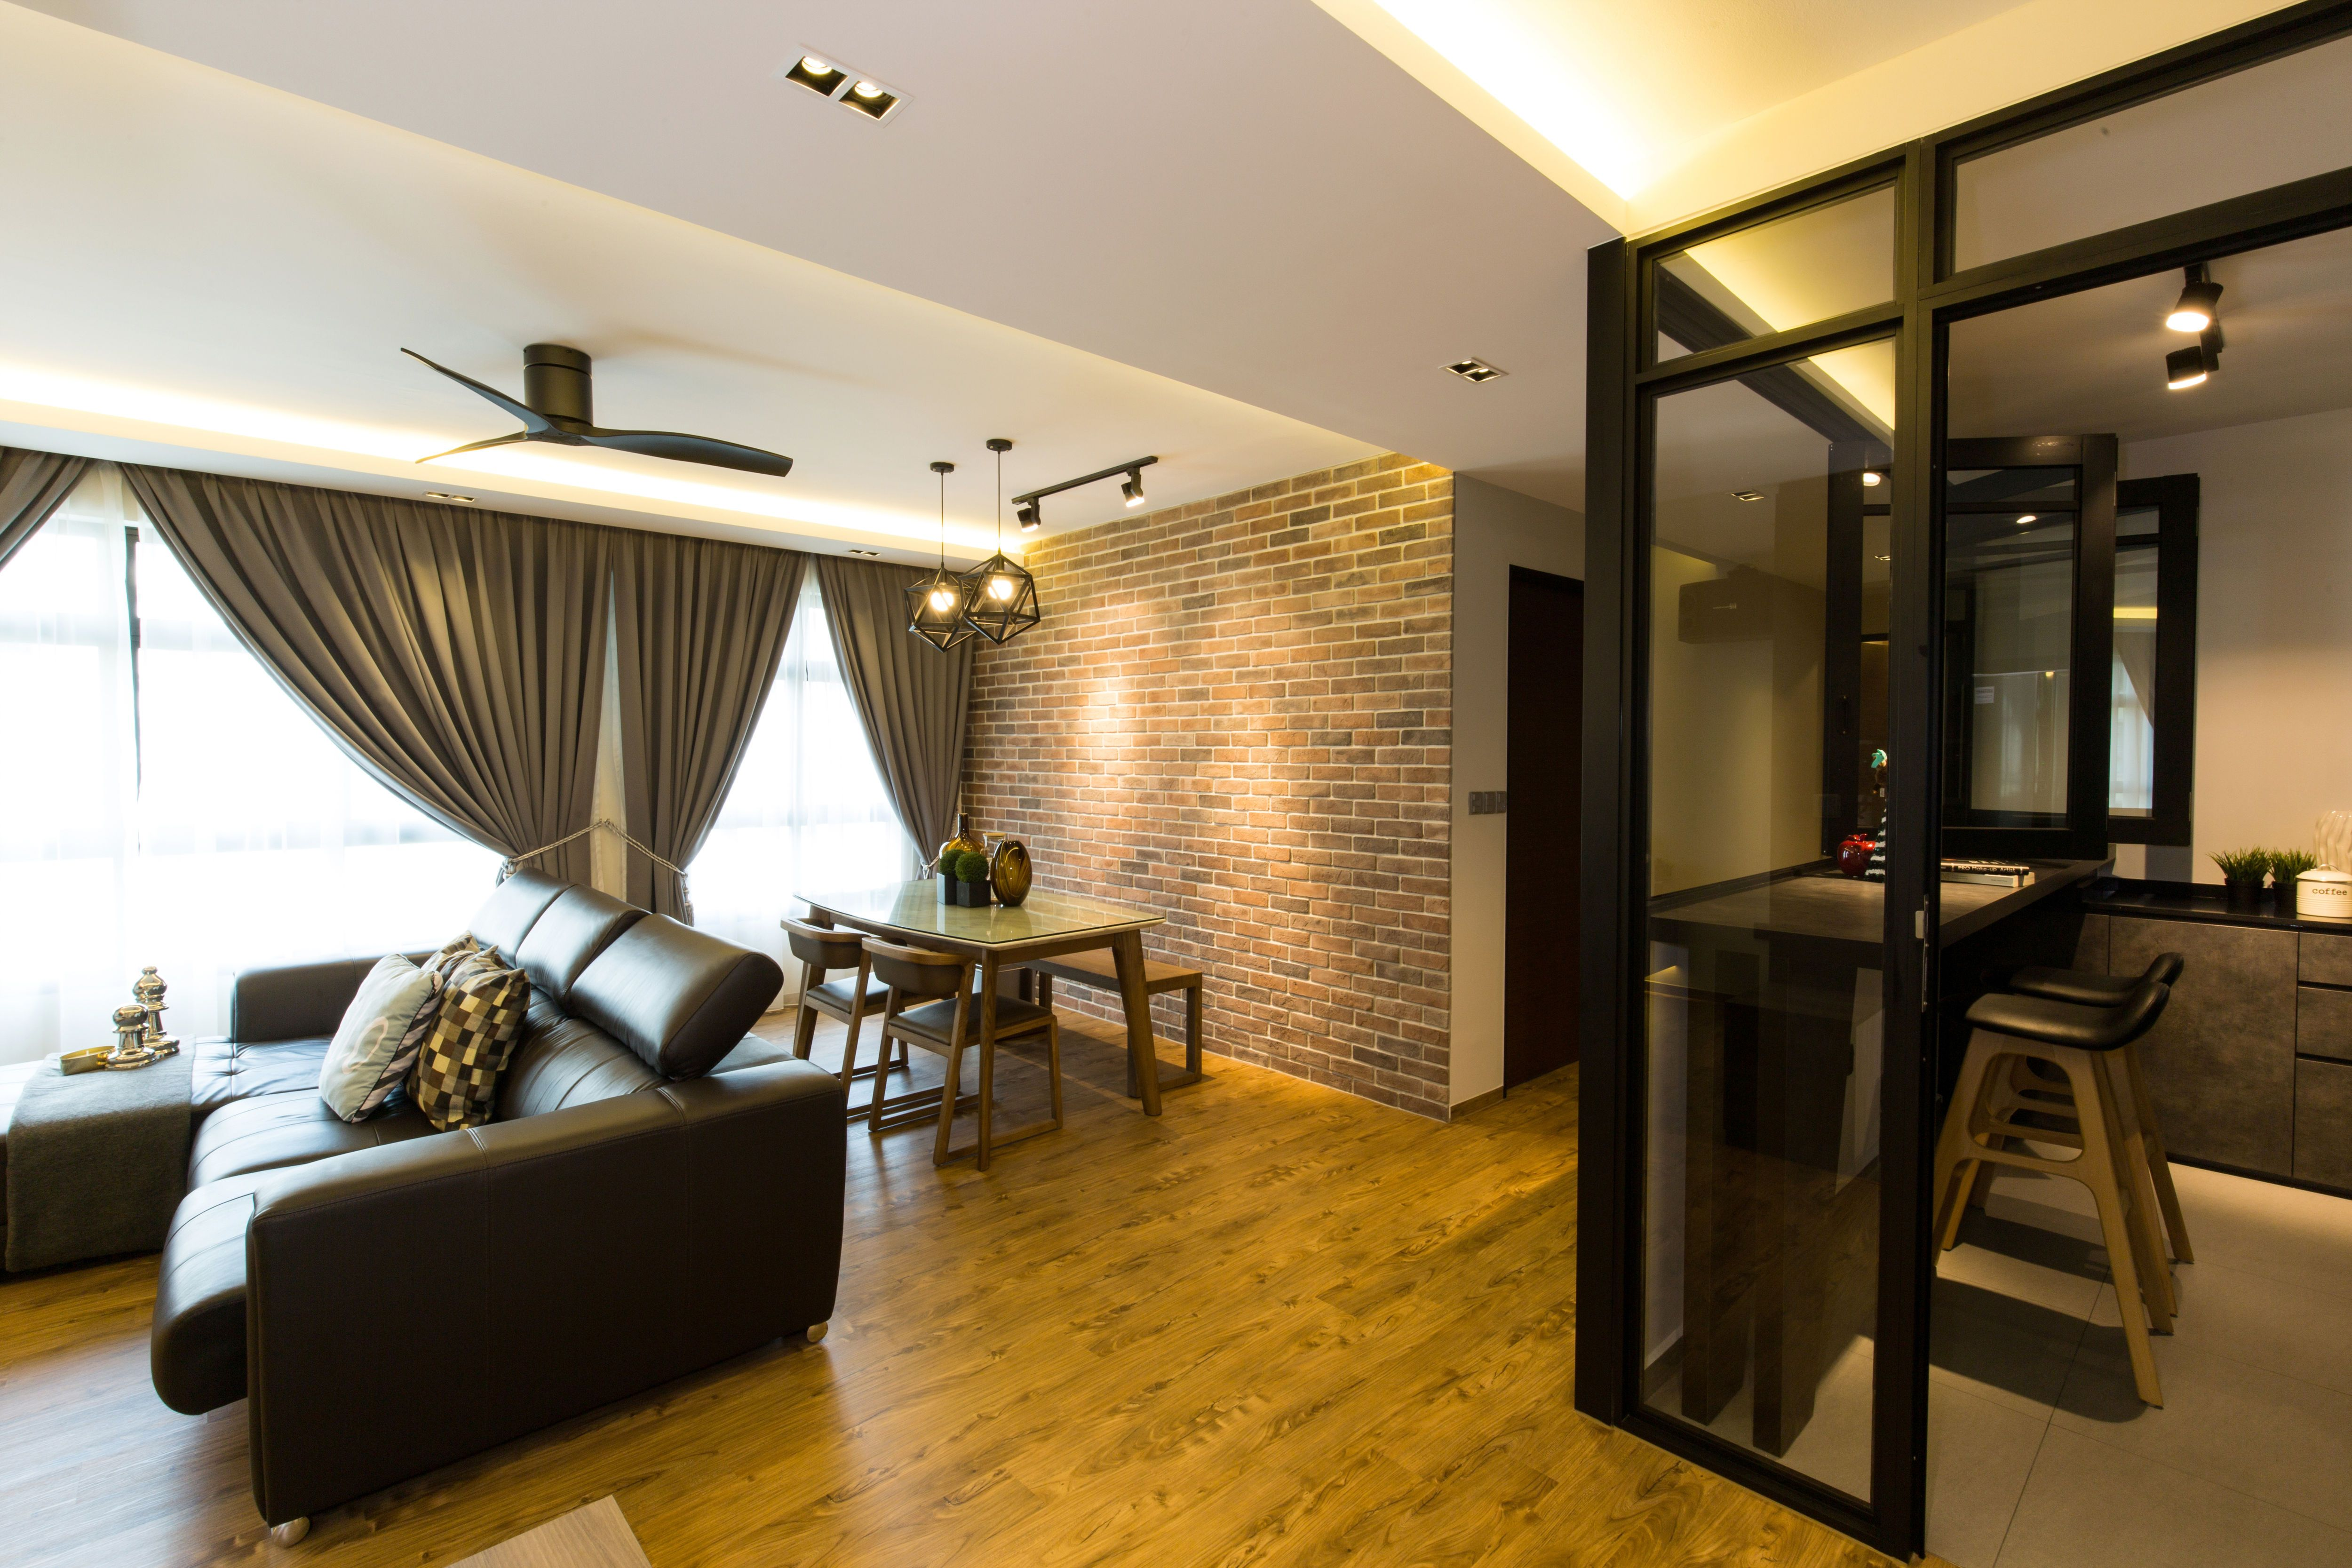 Interior design mistakes to avoid for your first hdb flat